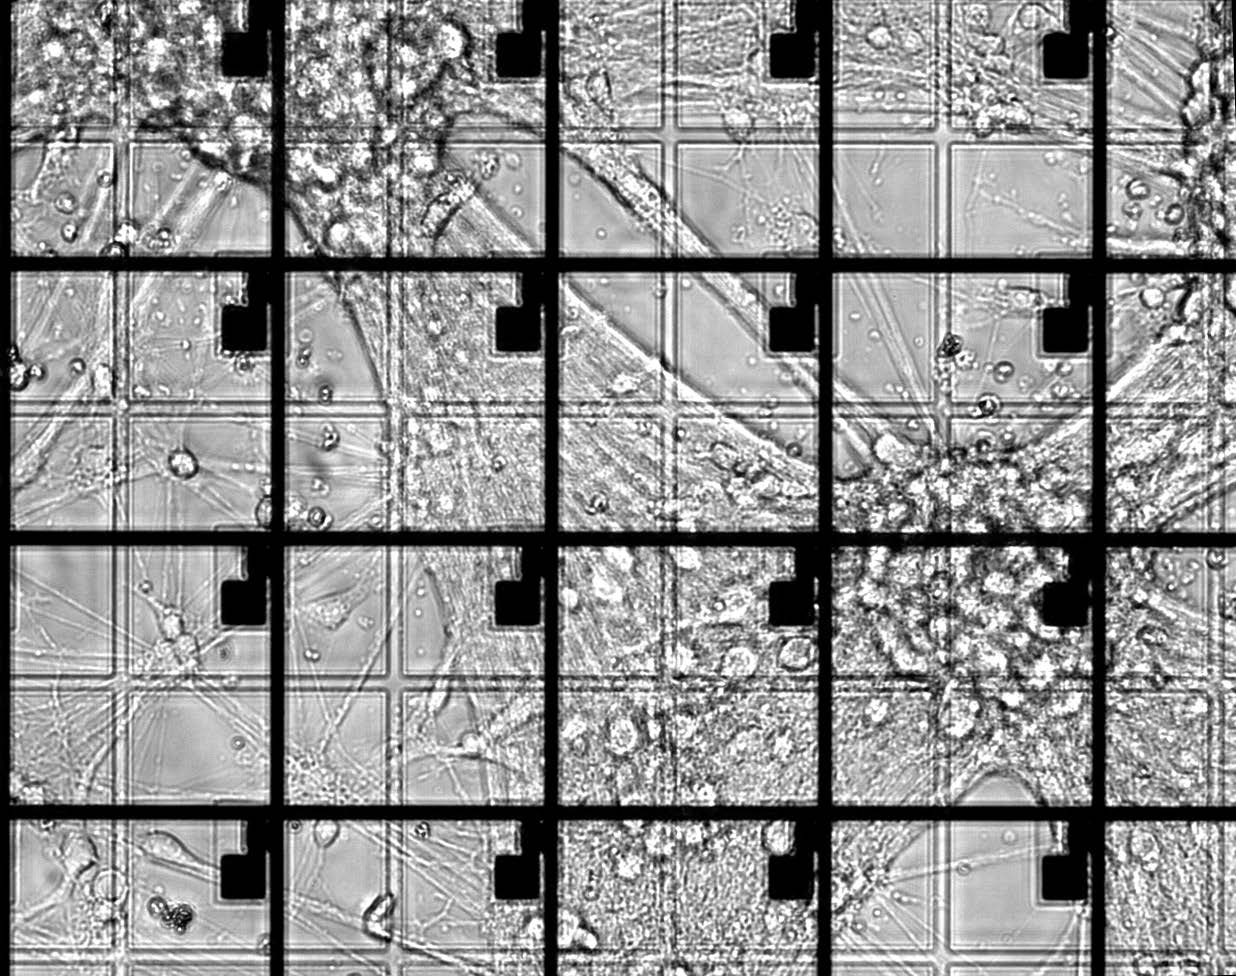 Primary cortical neuron cells culture on a TFT array device.